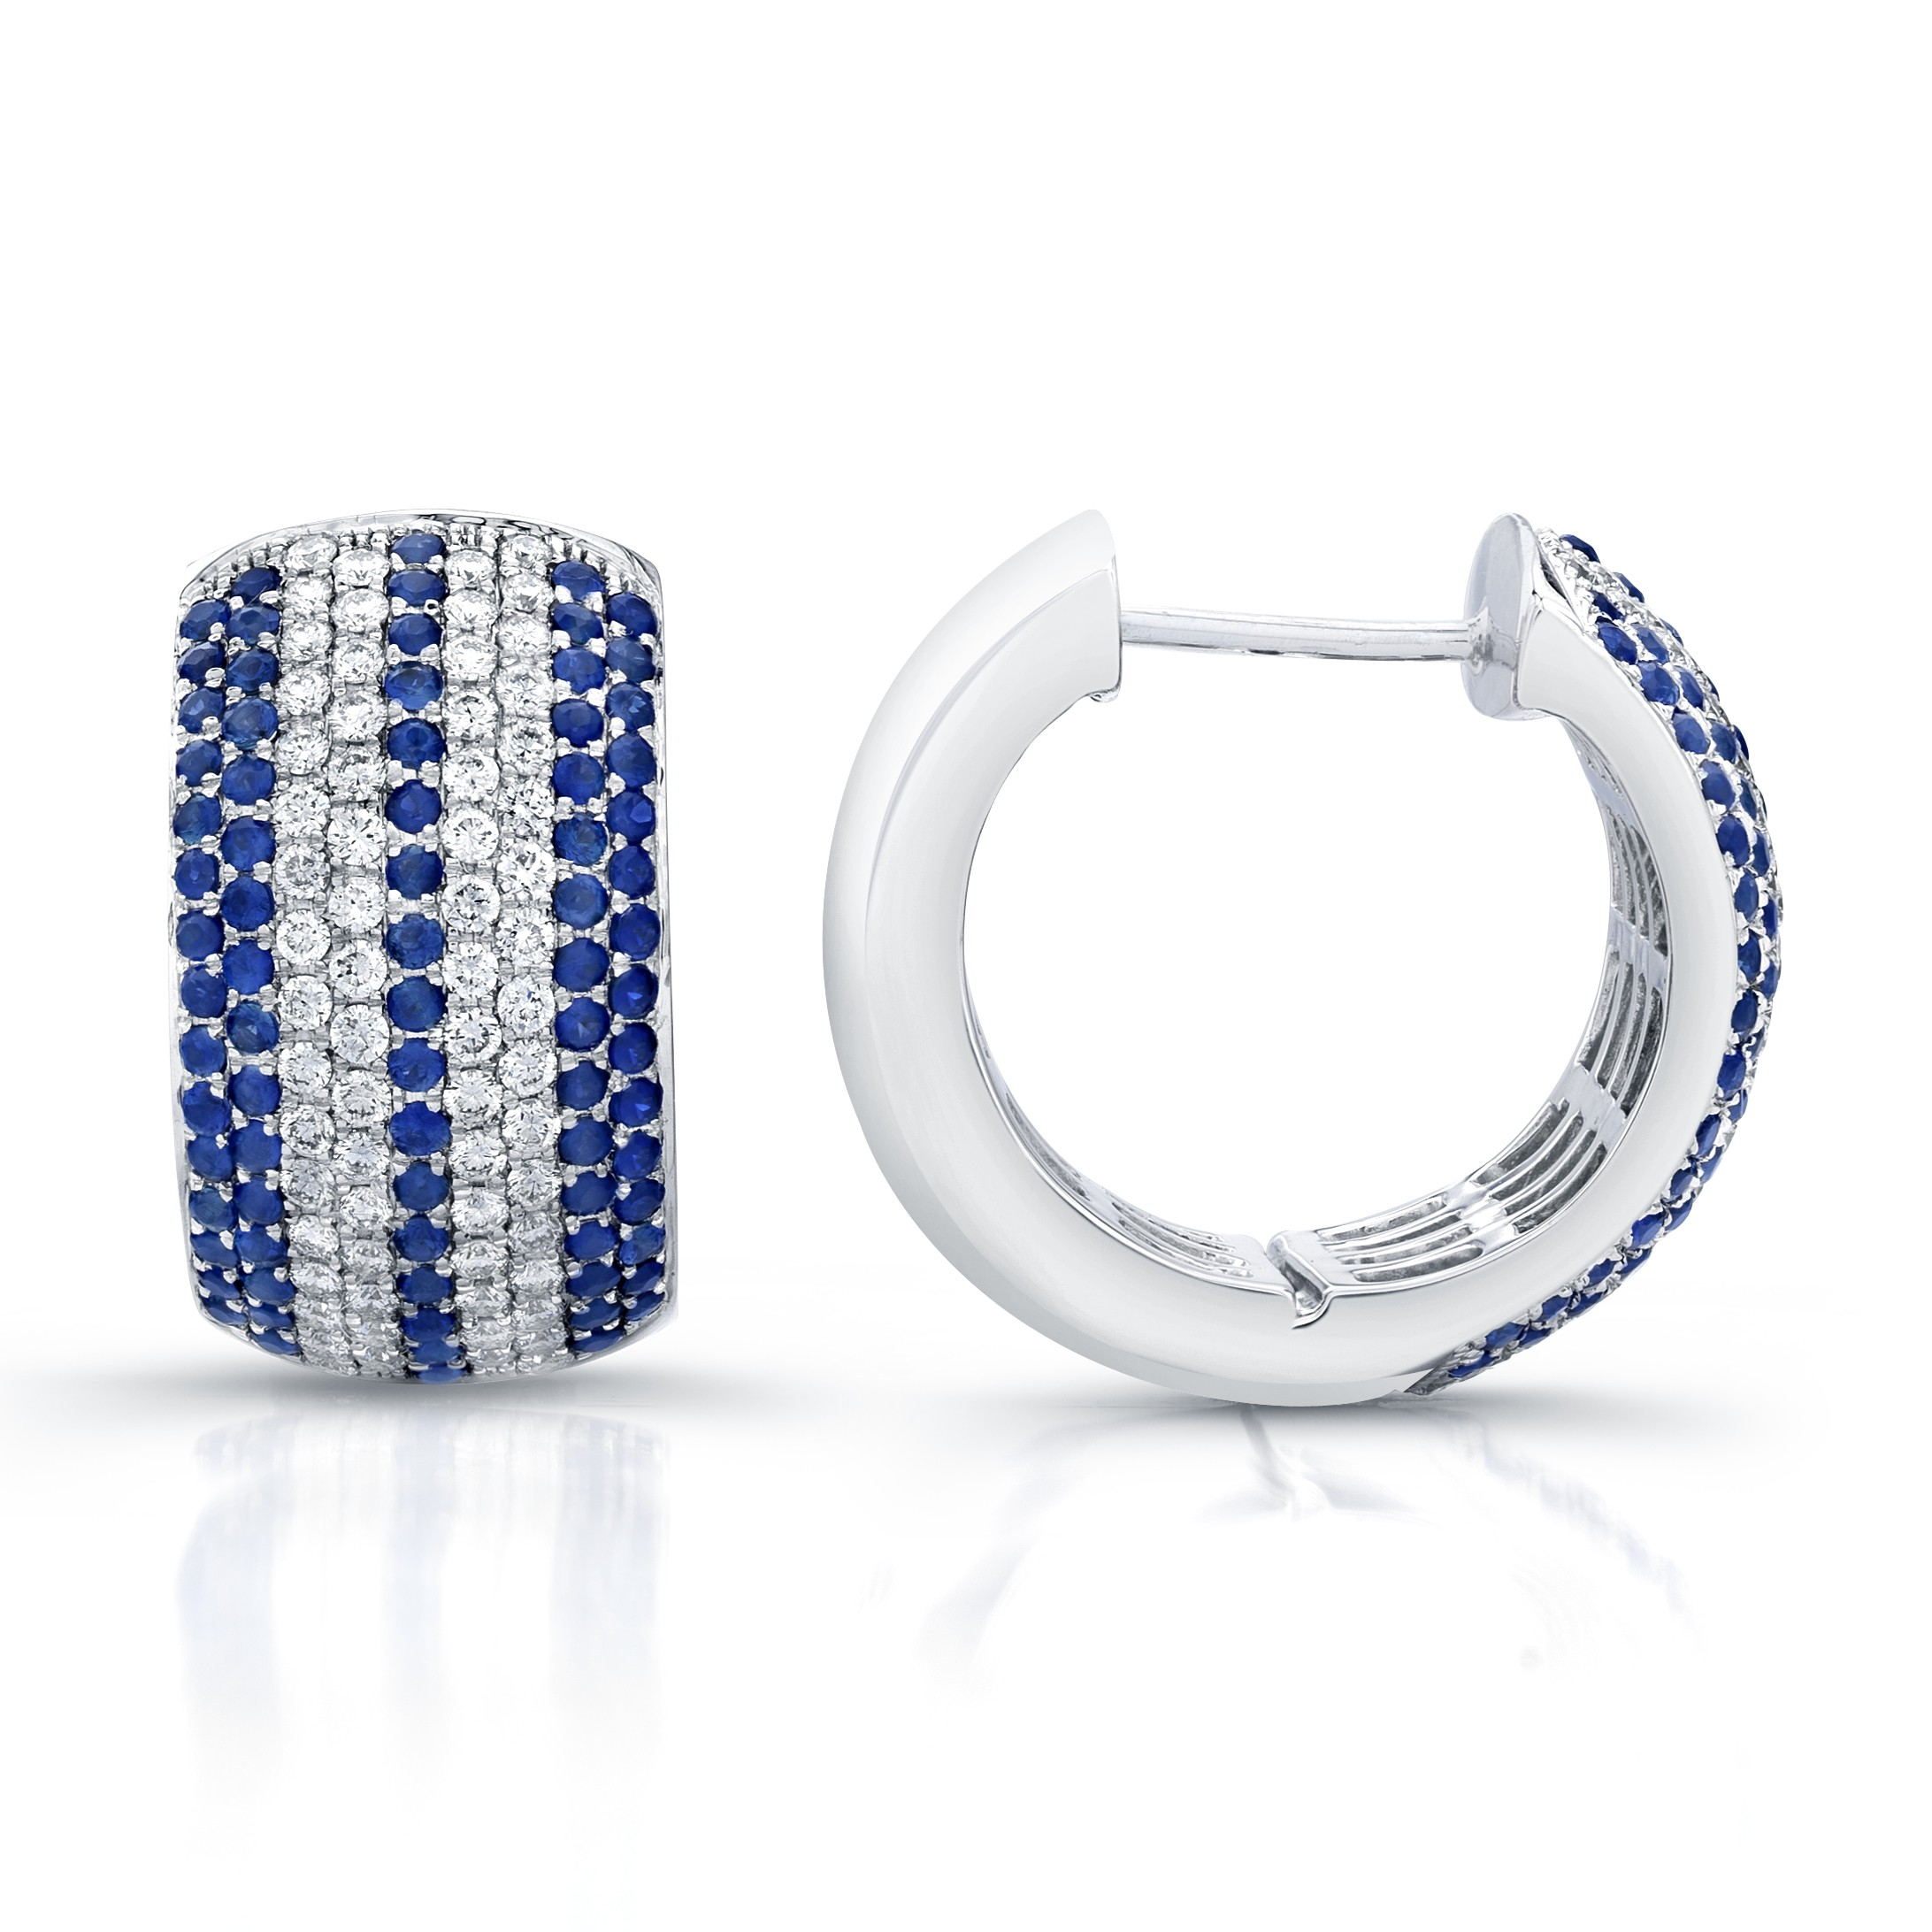 Saphisto Collection 18K White Gold Diamond and Blue Sapphire Hoop Earrings E131